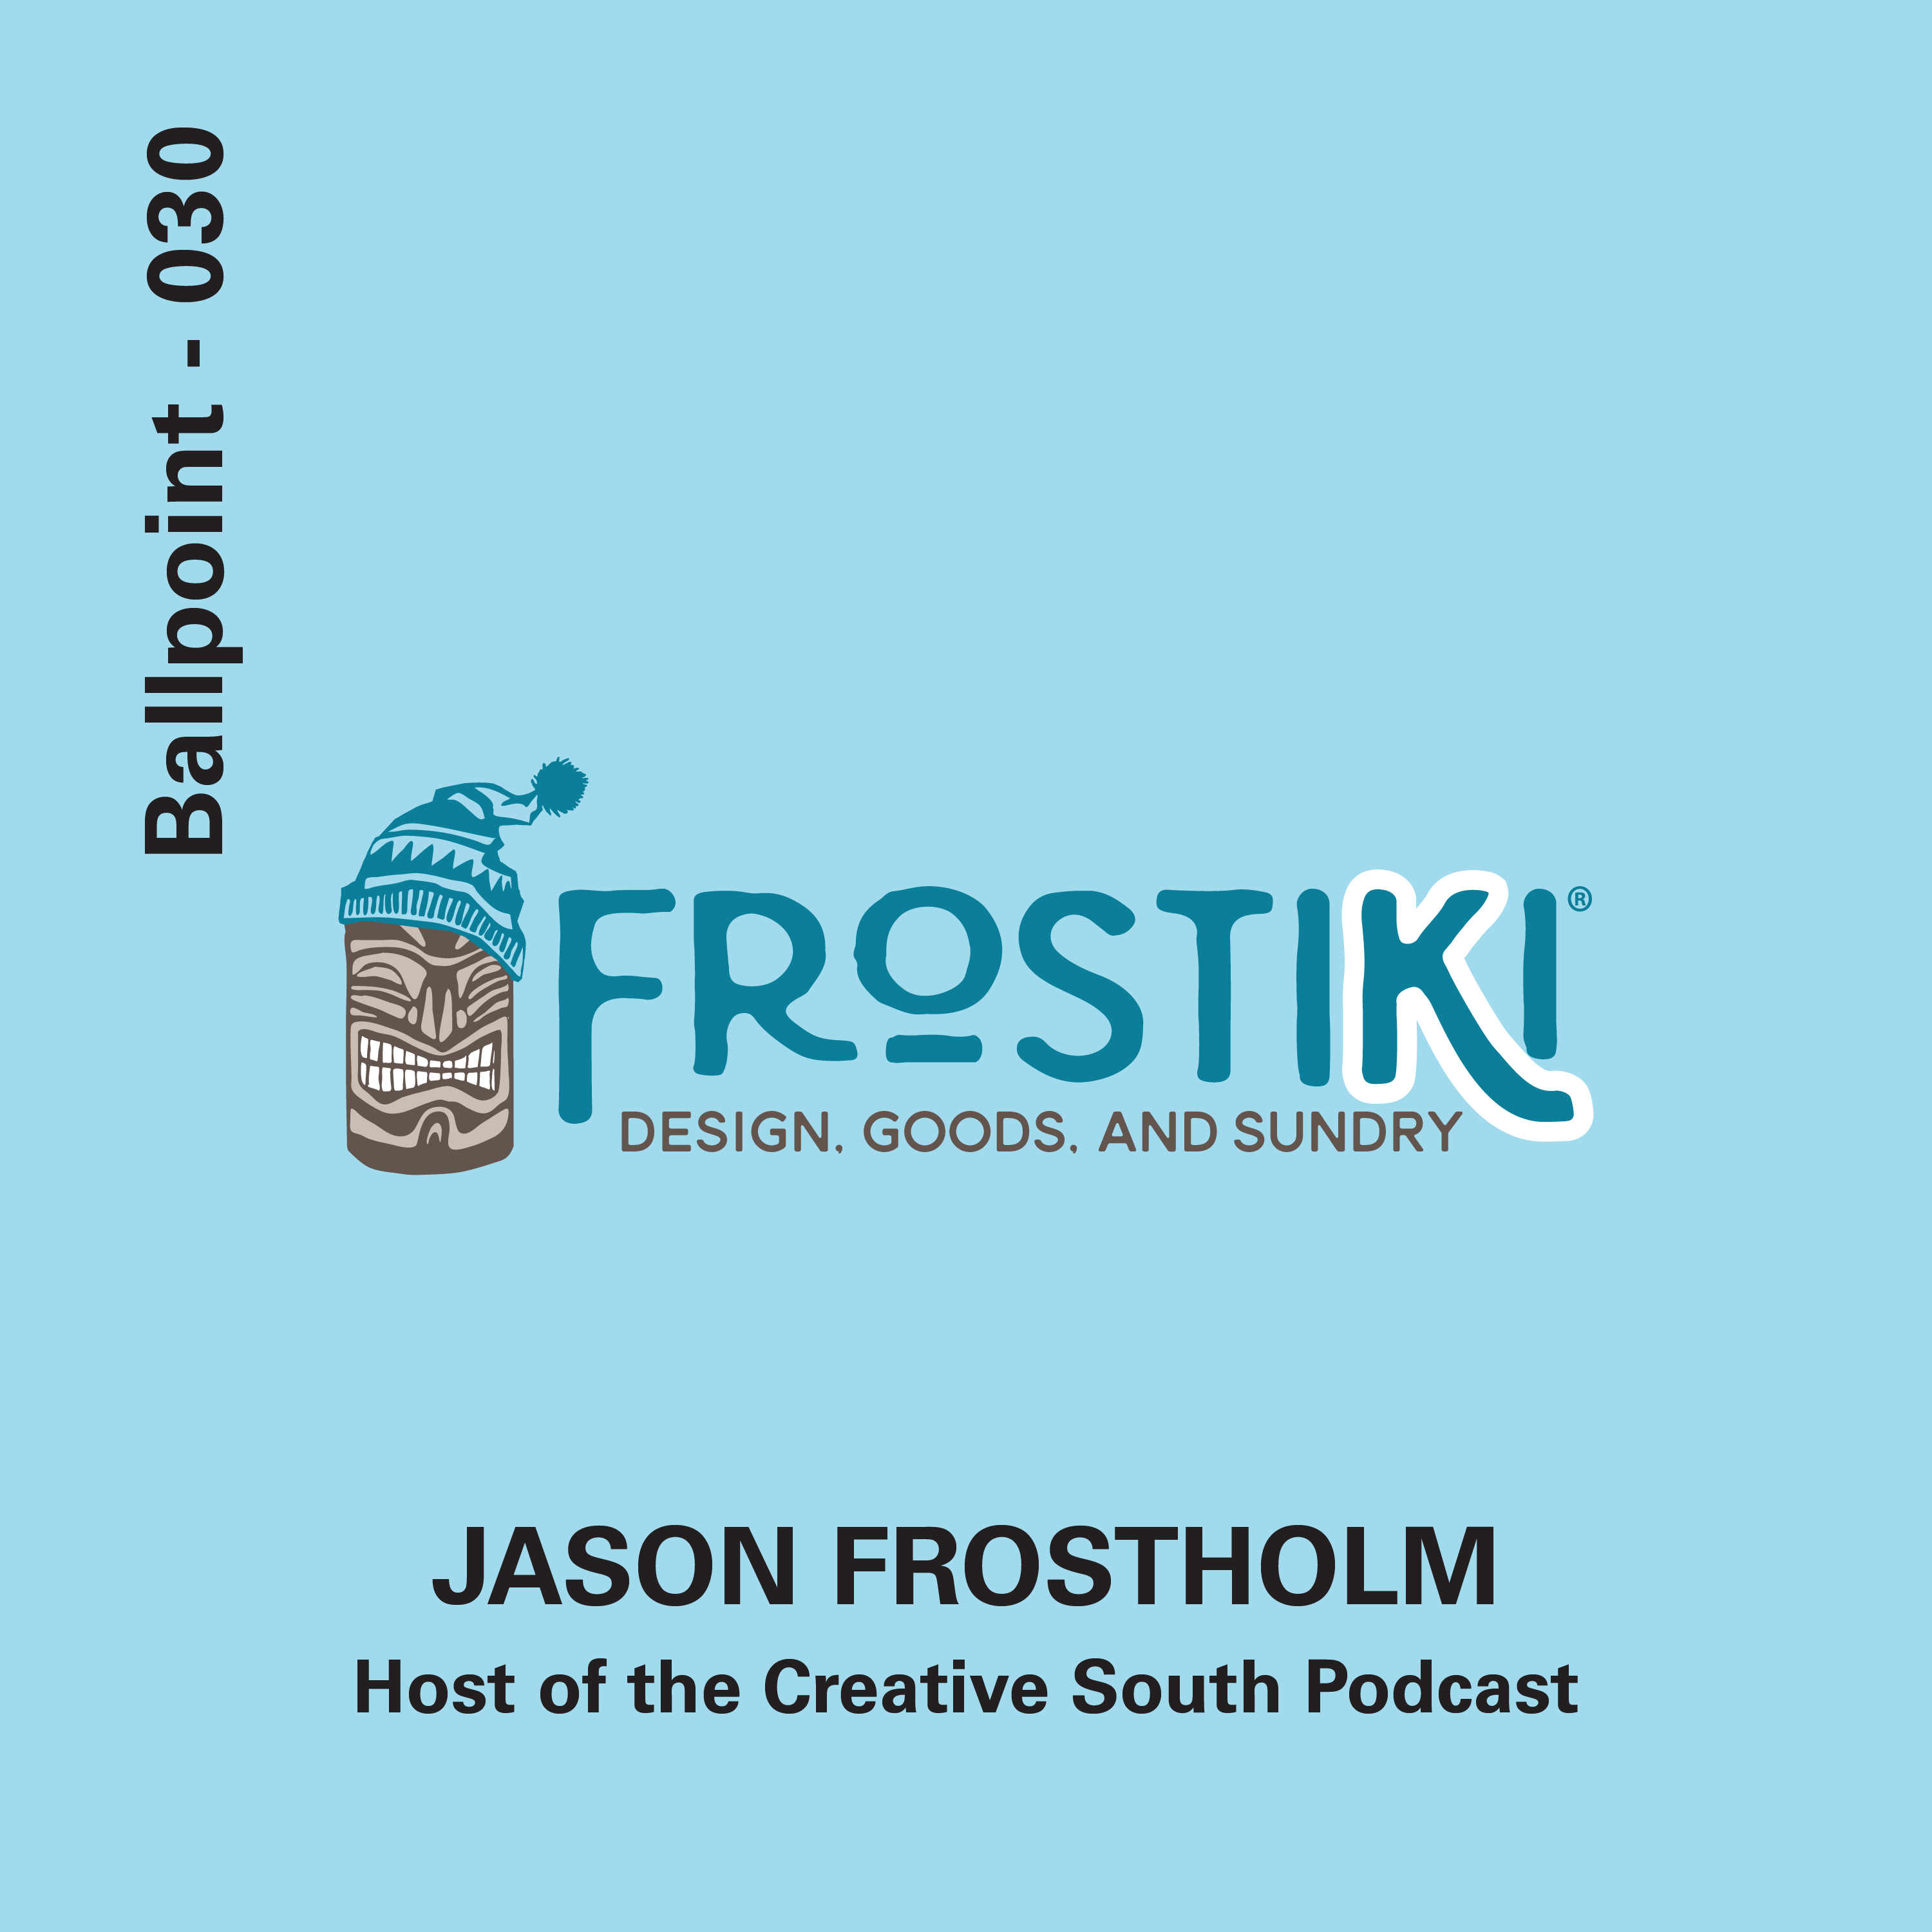 030 - Jason Frostholm, Host of the Creative South Podcast